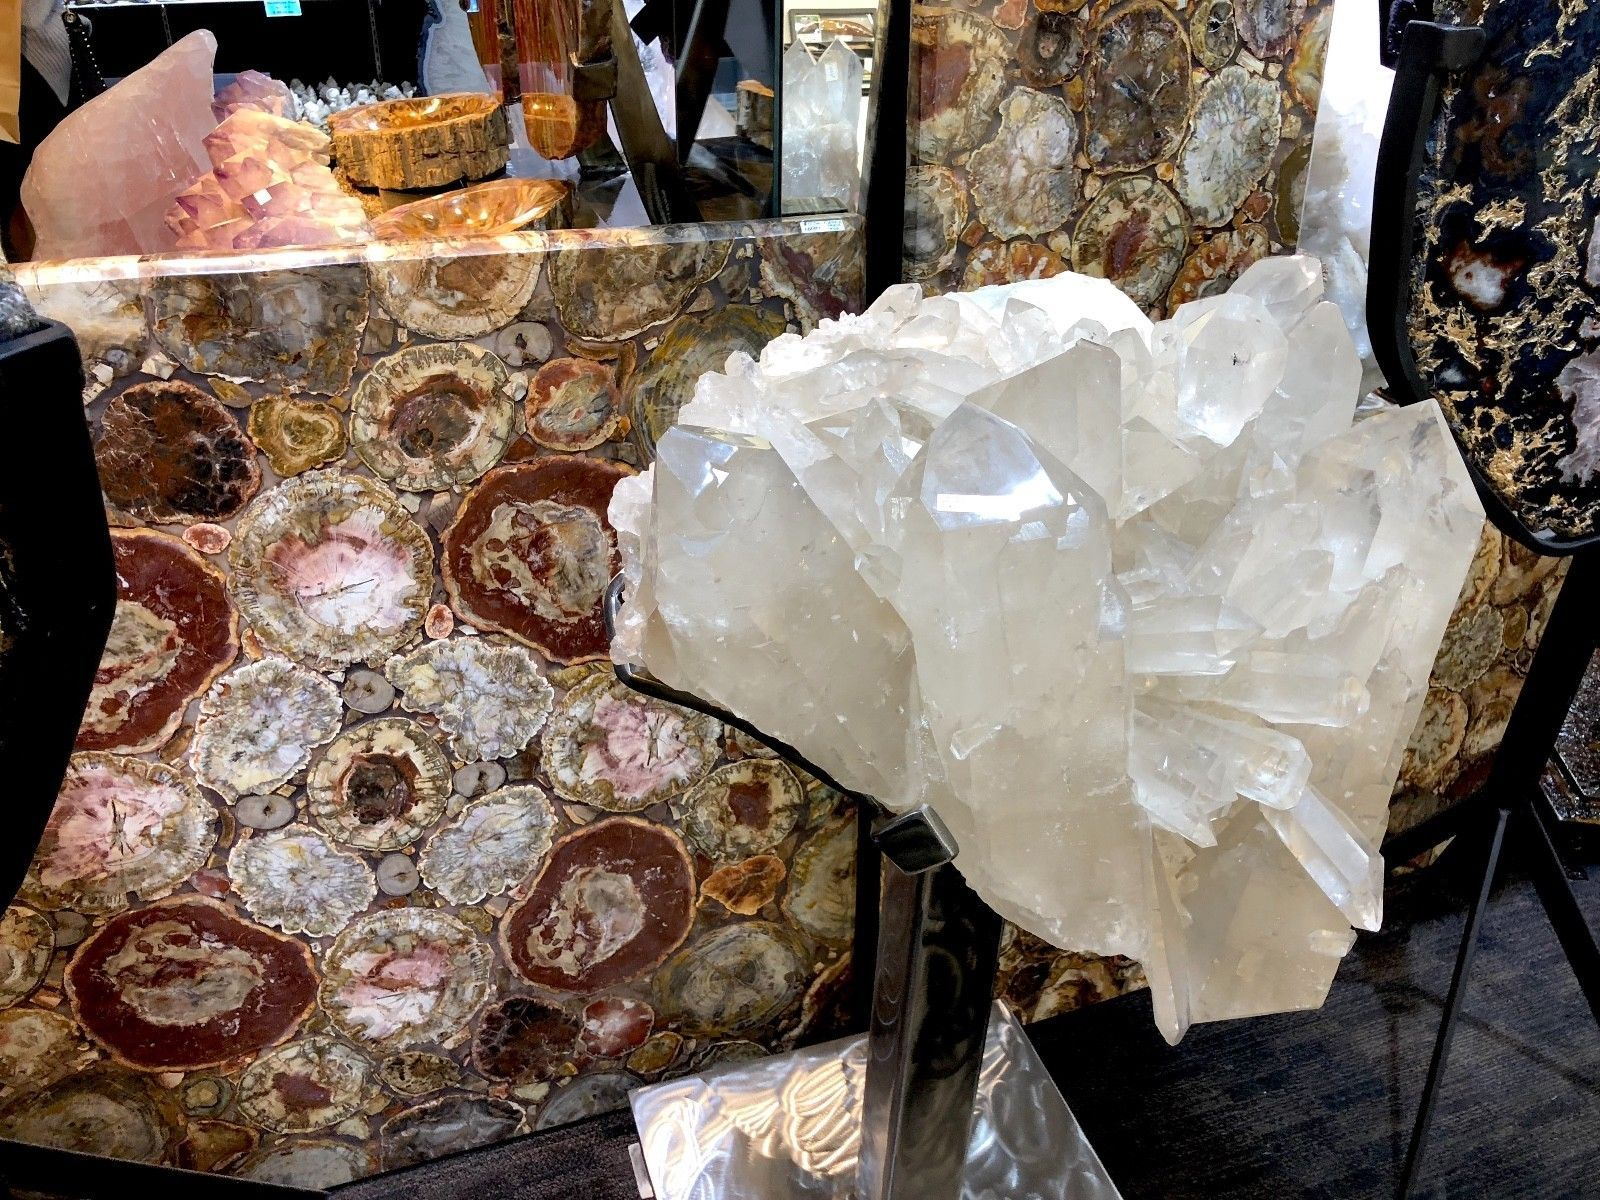 CRYSTAL QUARTZ w/ STAND MINERAL ROCK INCREDIBLE FORMATIONS Sticker $45,000 image 2